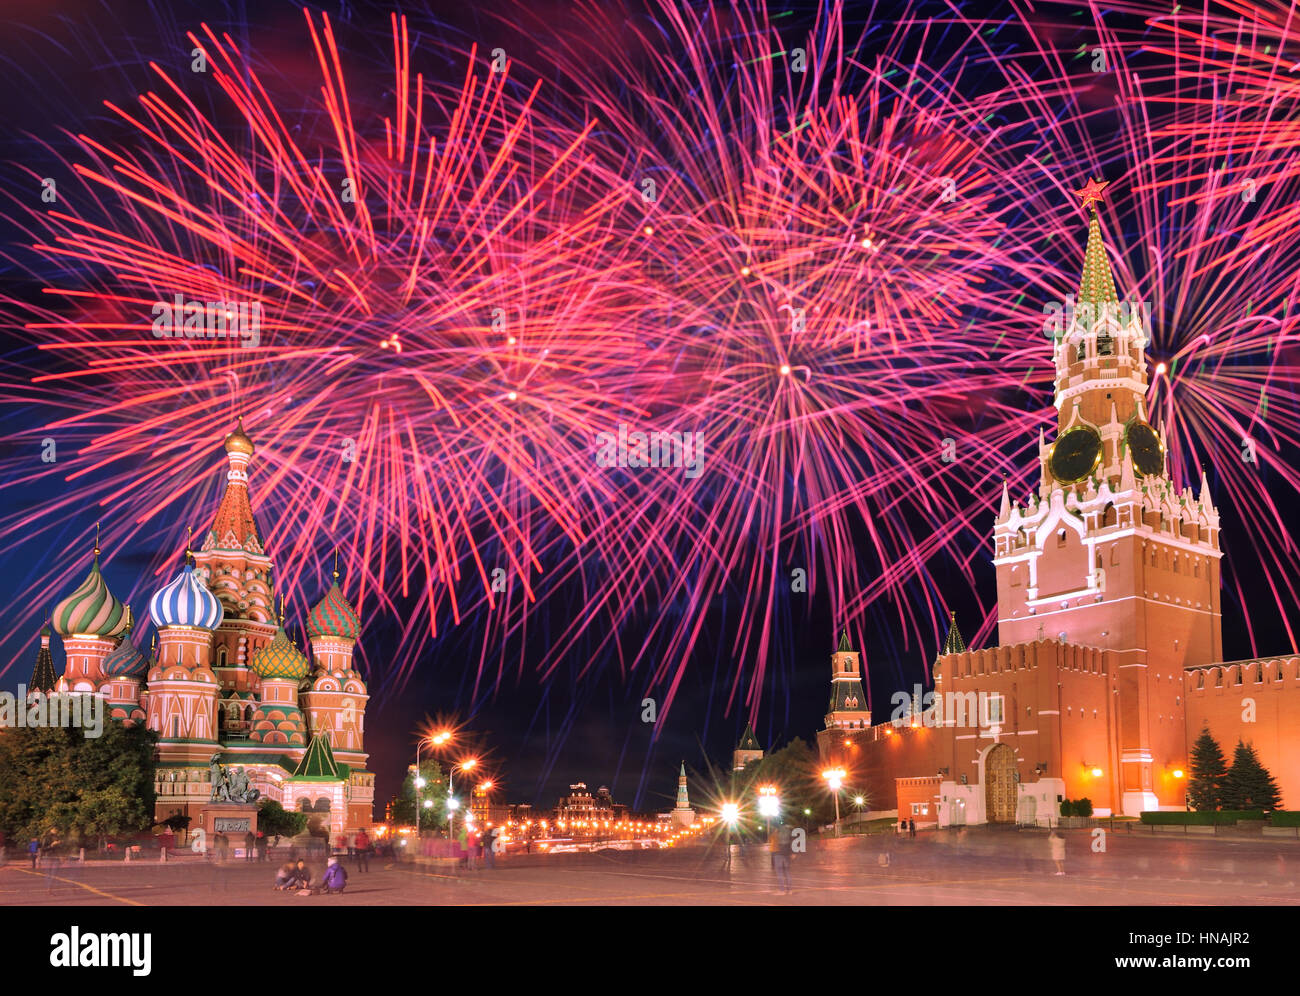 Red Fireworks Free Stock Photo: Fireworks Explode Over Red Square In Moscow, Russia Stock